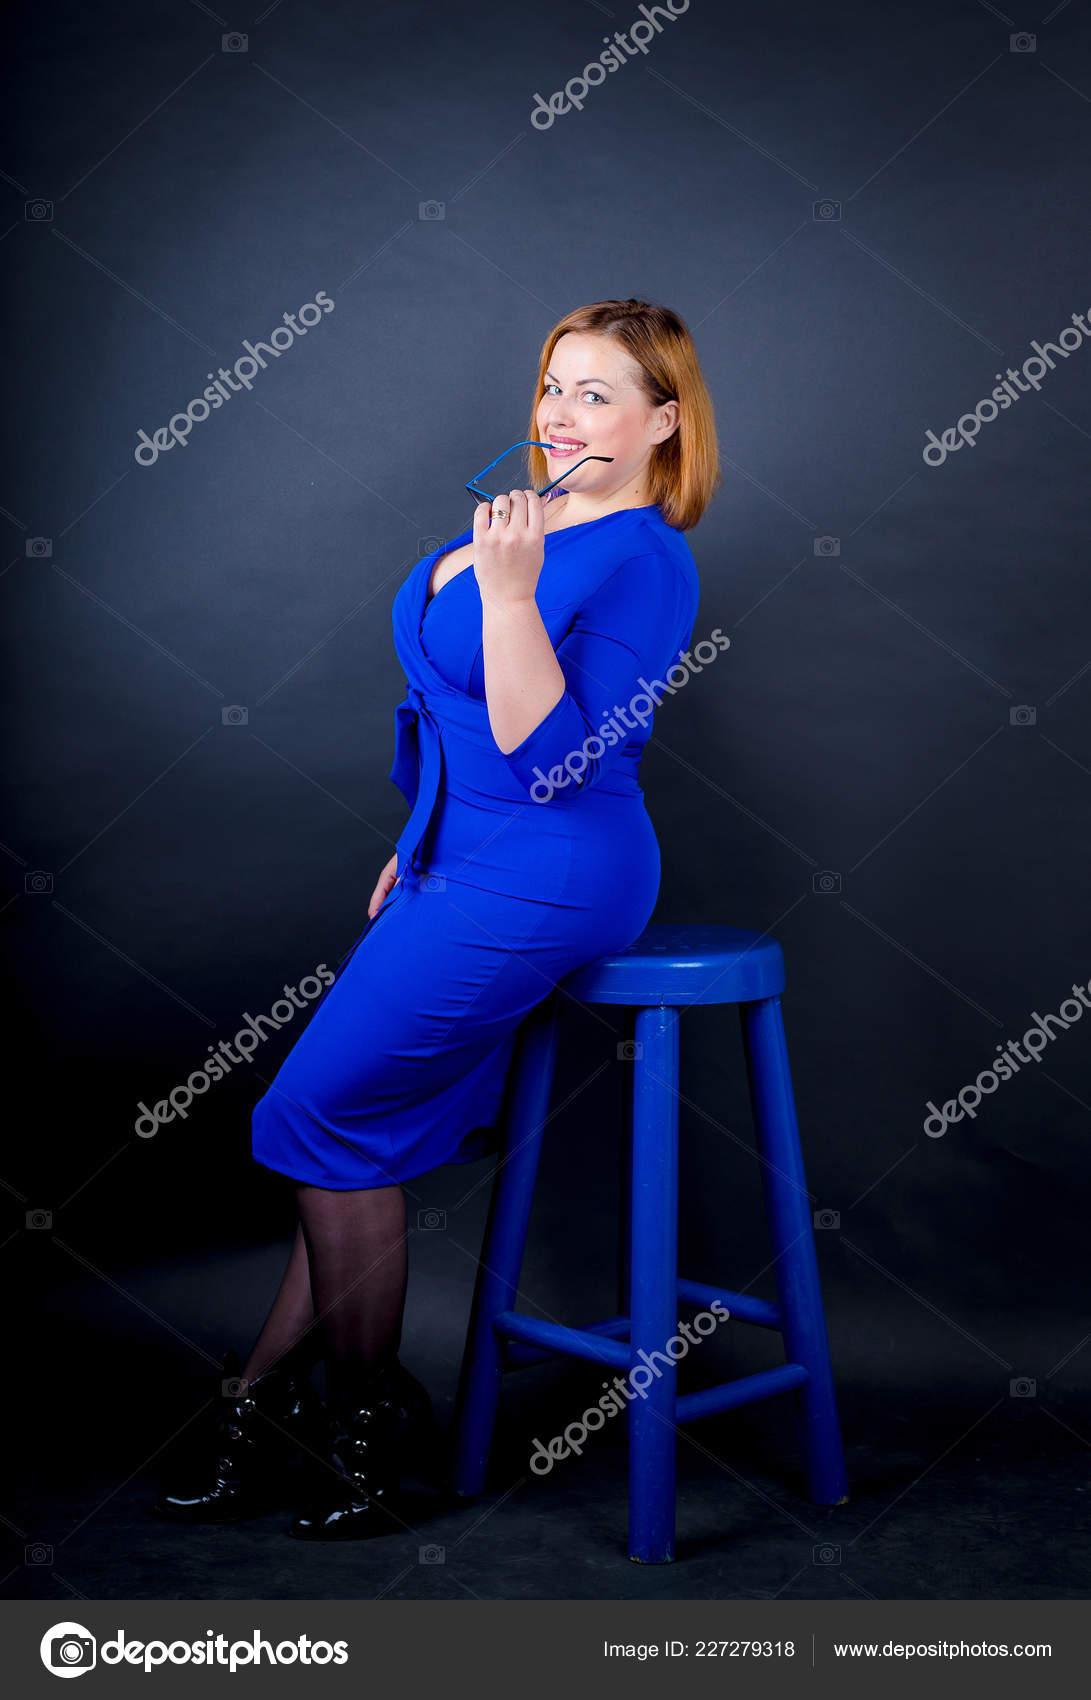 Beautiful Chubby Girl Blue Elegant Dress Black Background Sexy Size